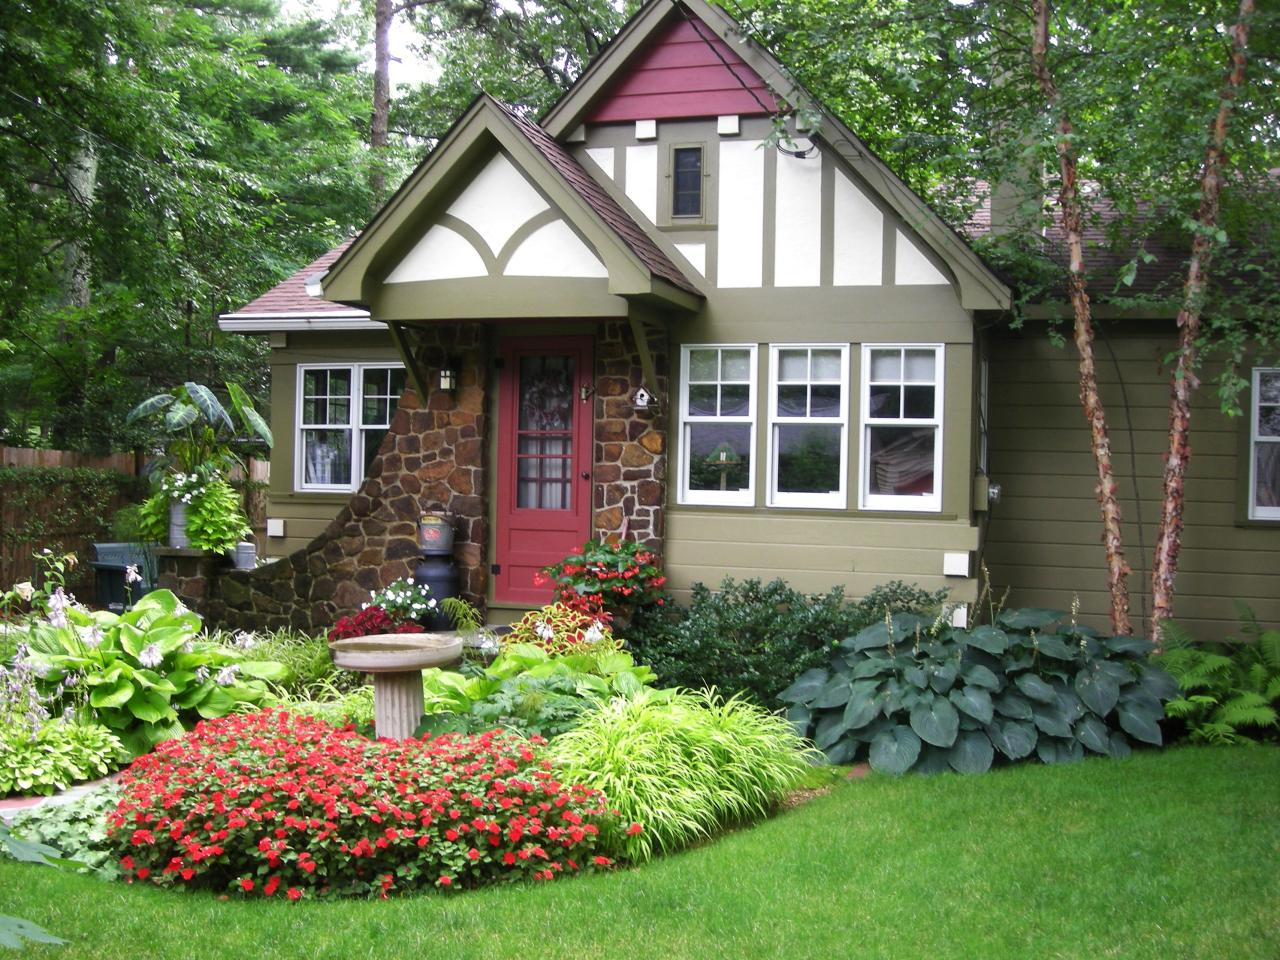 Photos hgtv for Cottage garden plans designs